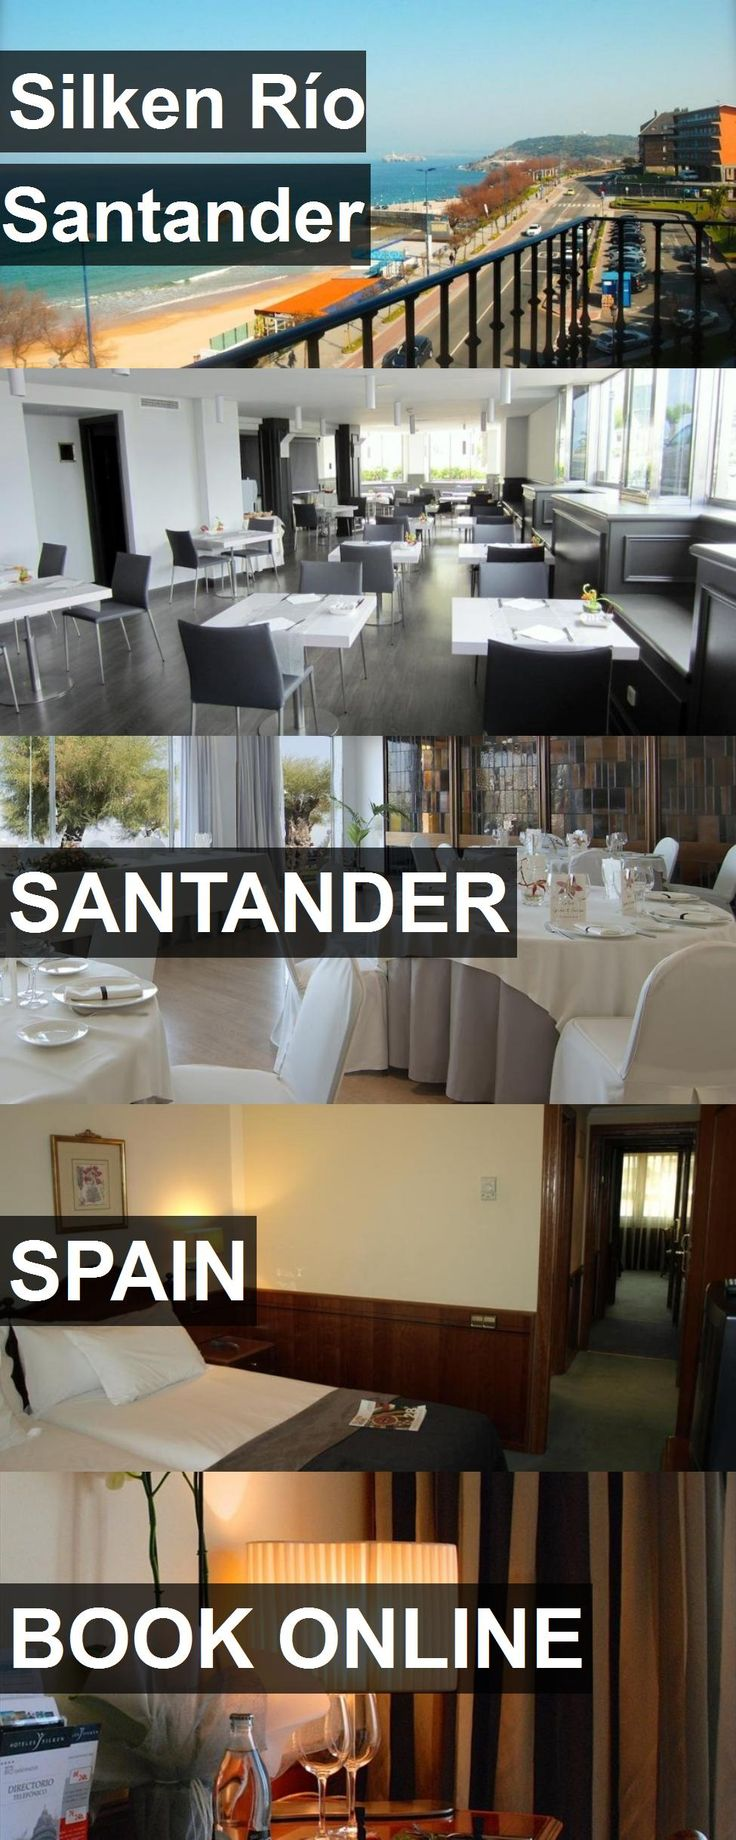 Hotel Silken Río Santander in Santander, Spain. For more information, photos, reviews and best prices please follow the link. #Spain #Santander #travel #vacation #hotel